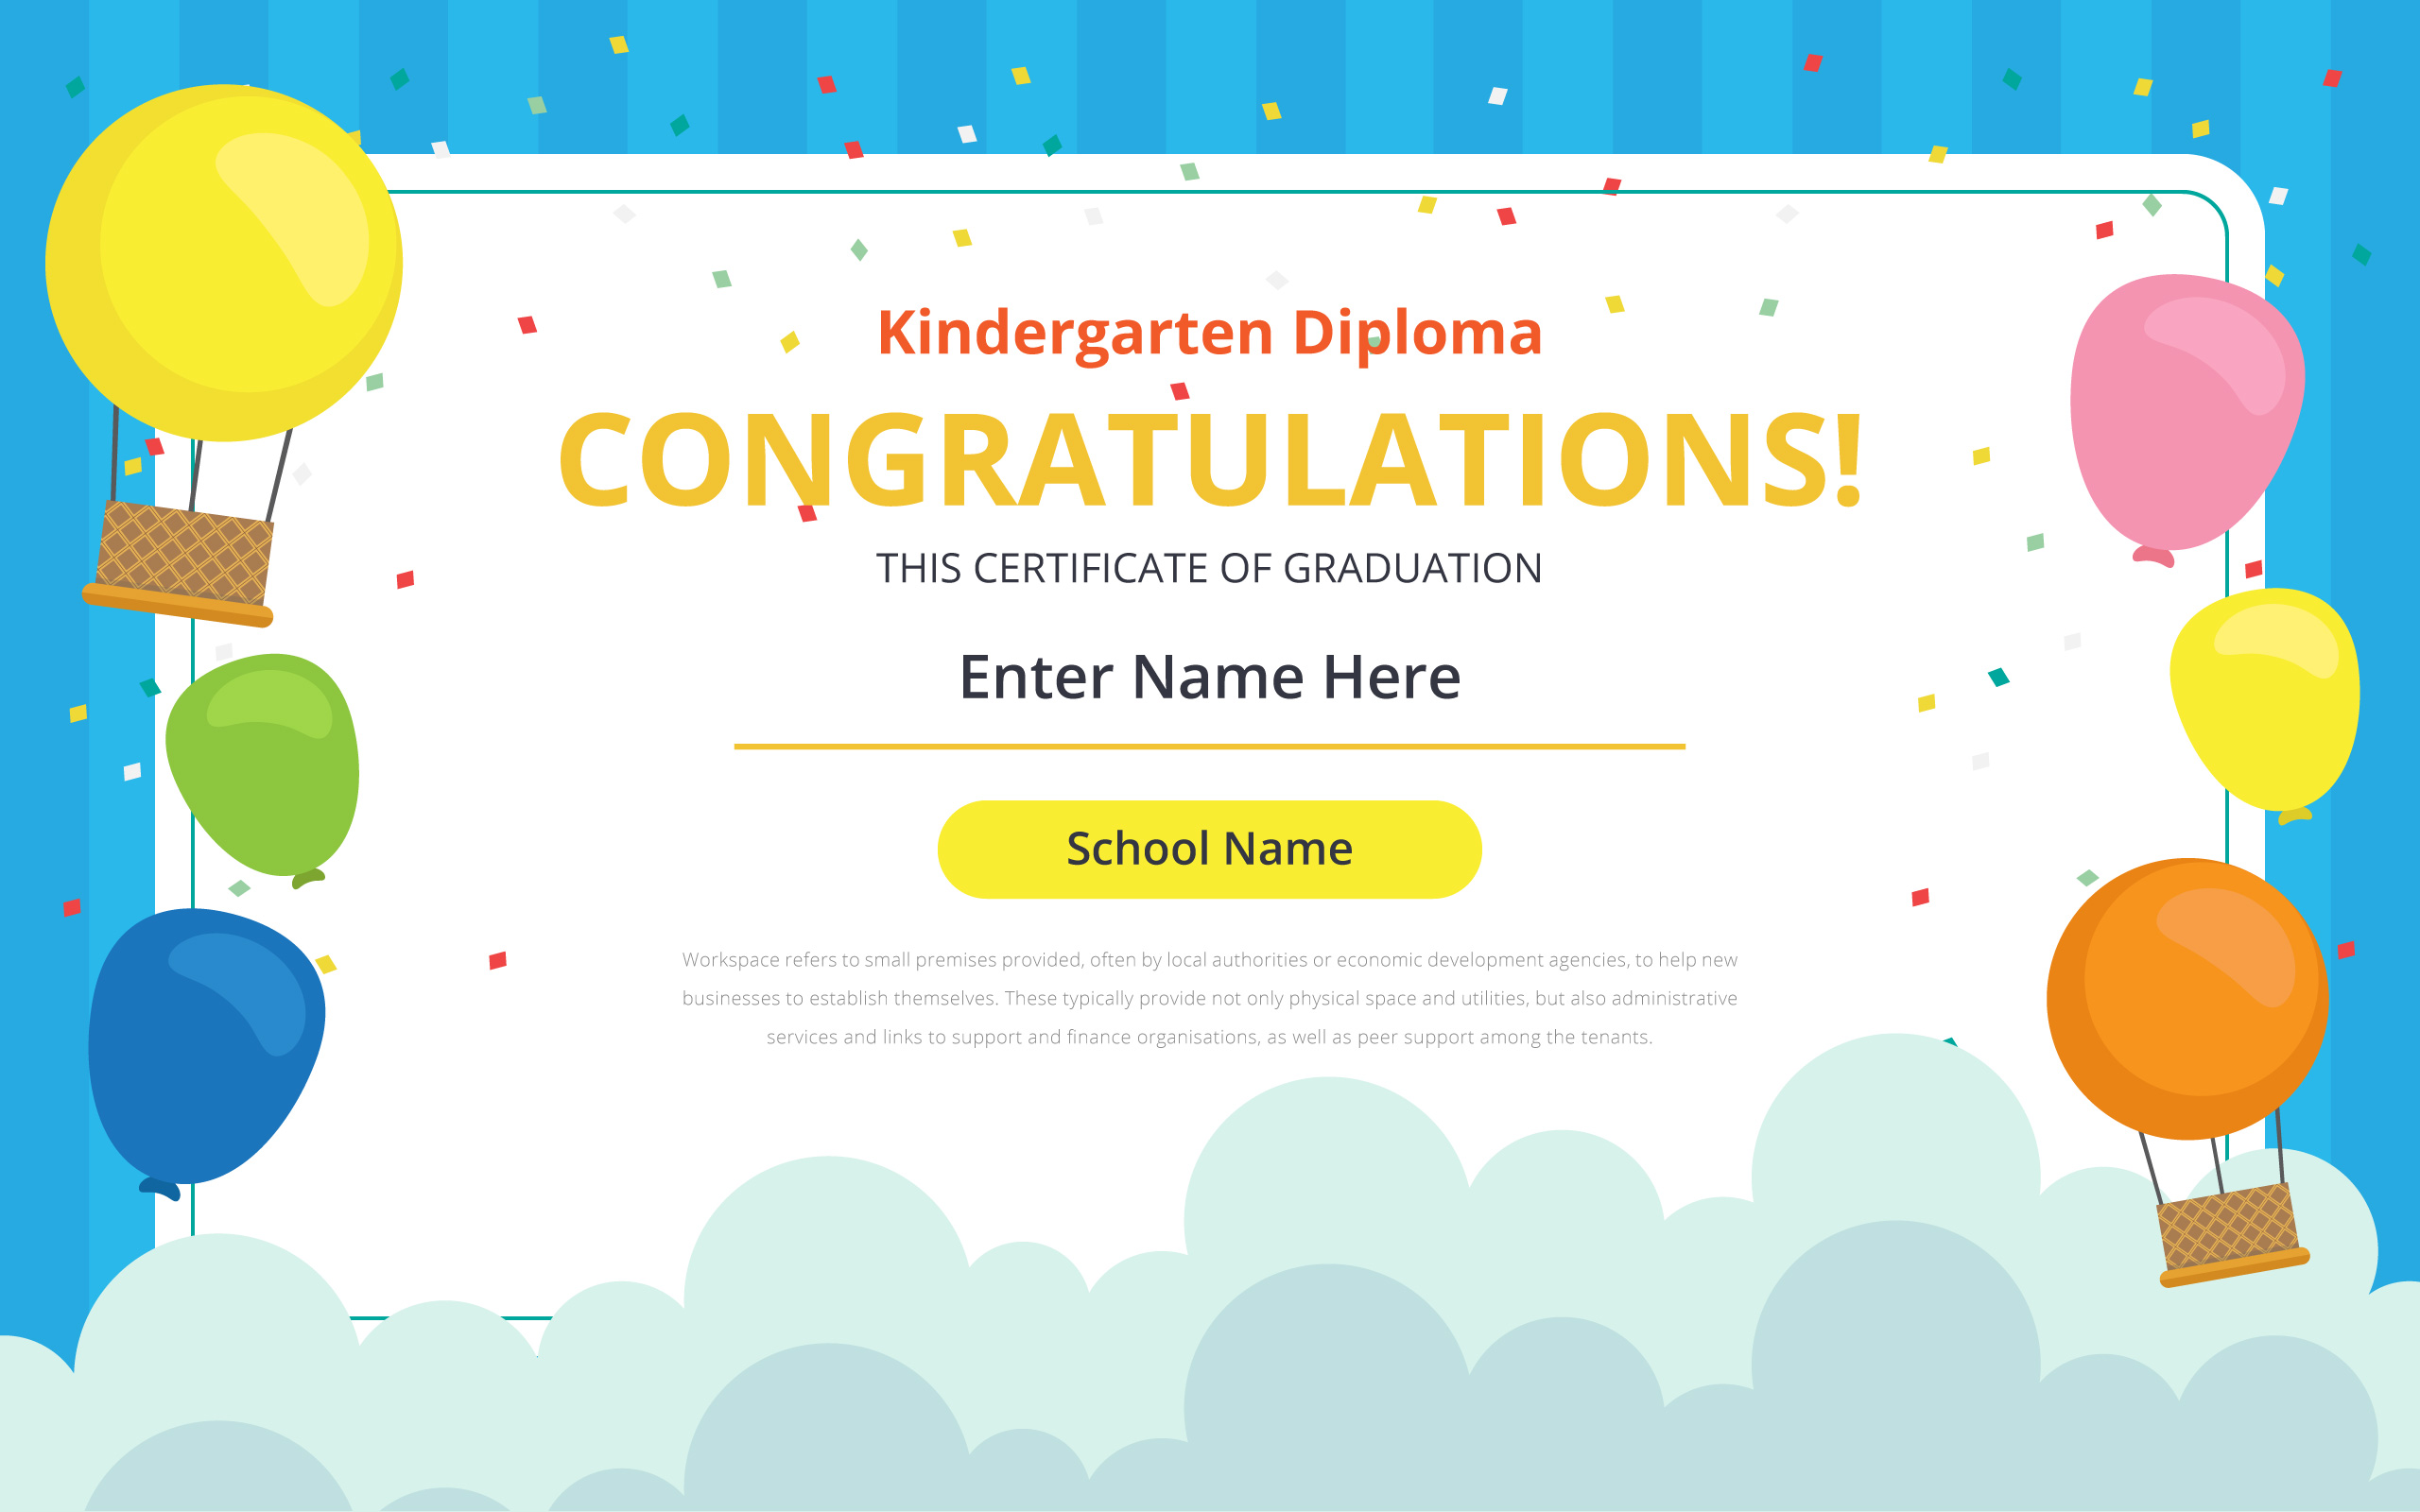 kindergarten certificate free vector art 1650 free downloads